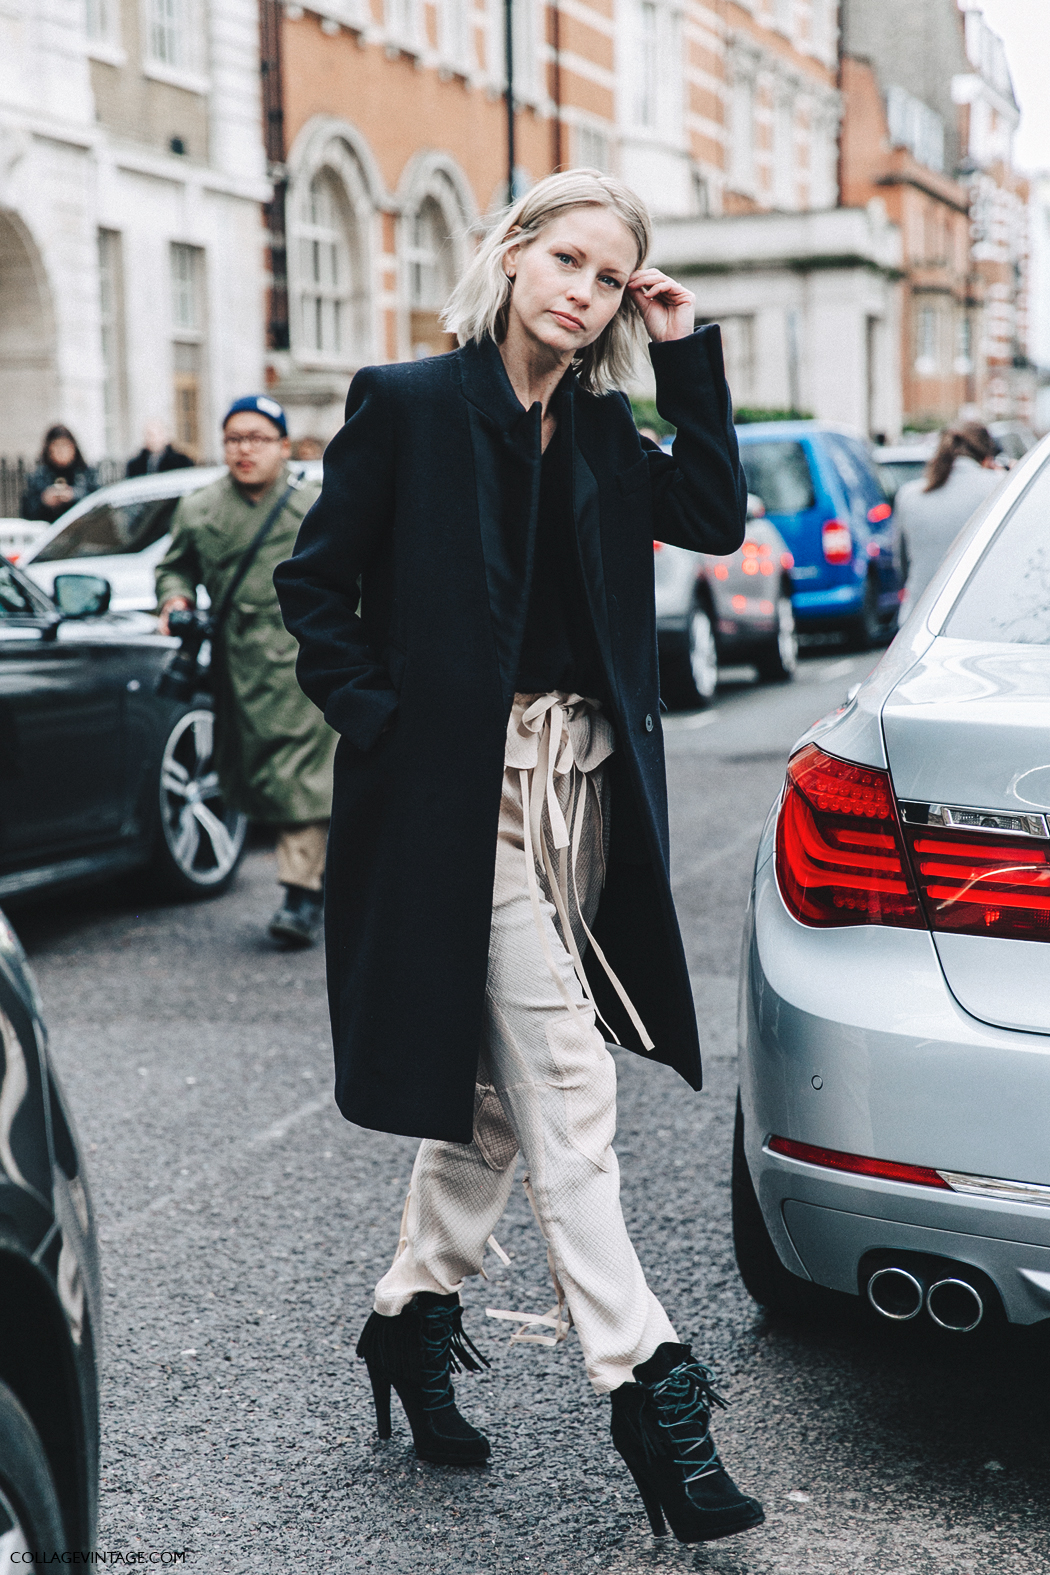 LFW-London_Fashion_Week_Fall_16-Street_Style-Collage_Vintage-Holly_Rogers-Baggy_Trousers-